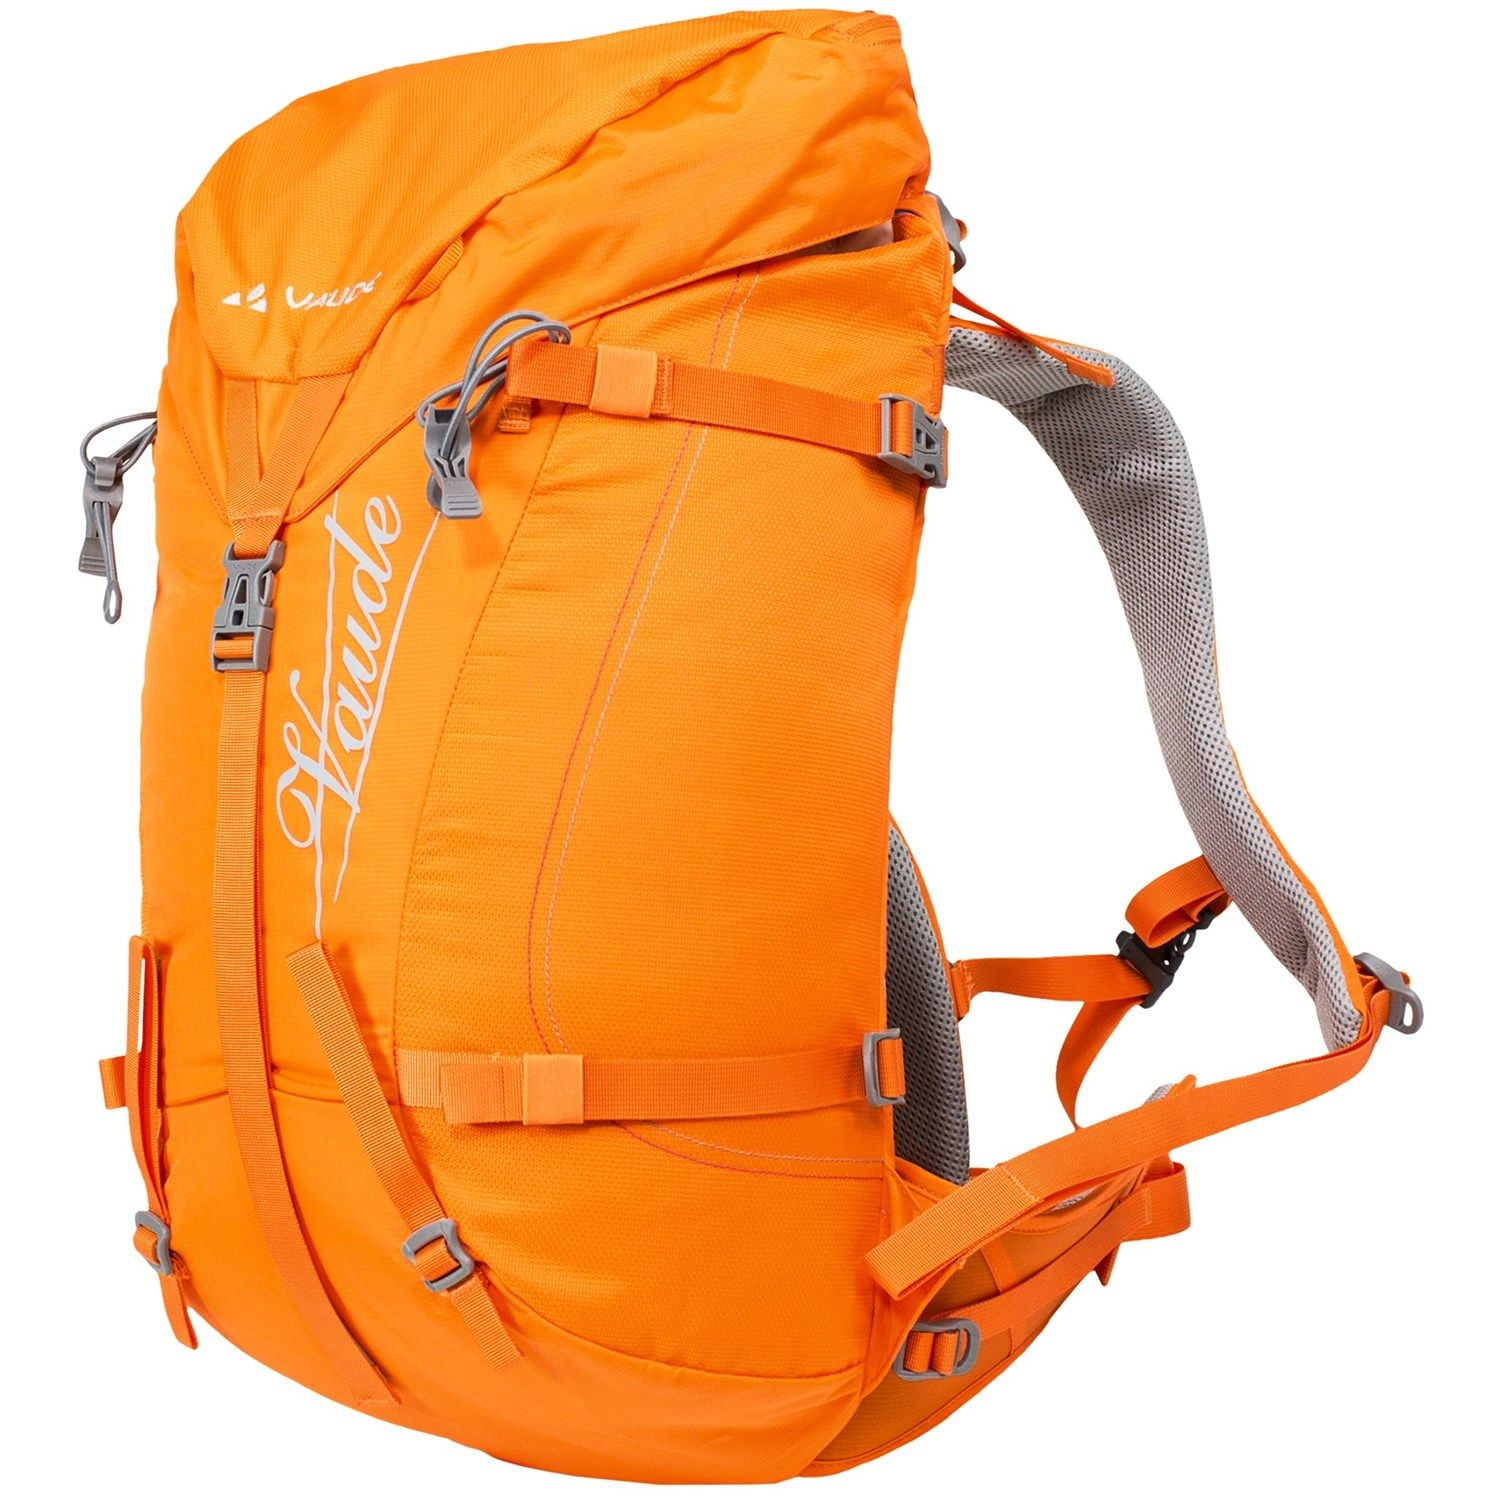 vaude optimator 28 backpack internal frame for women google